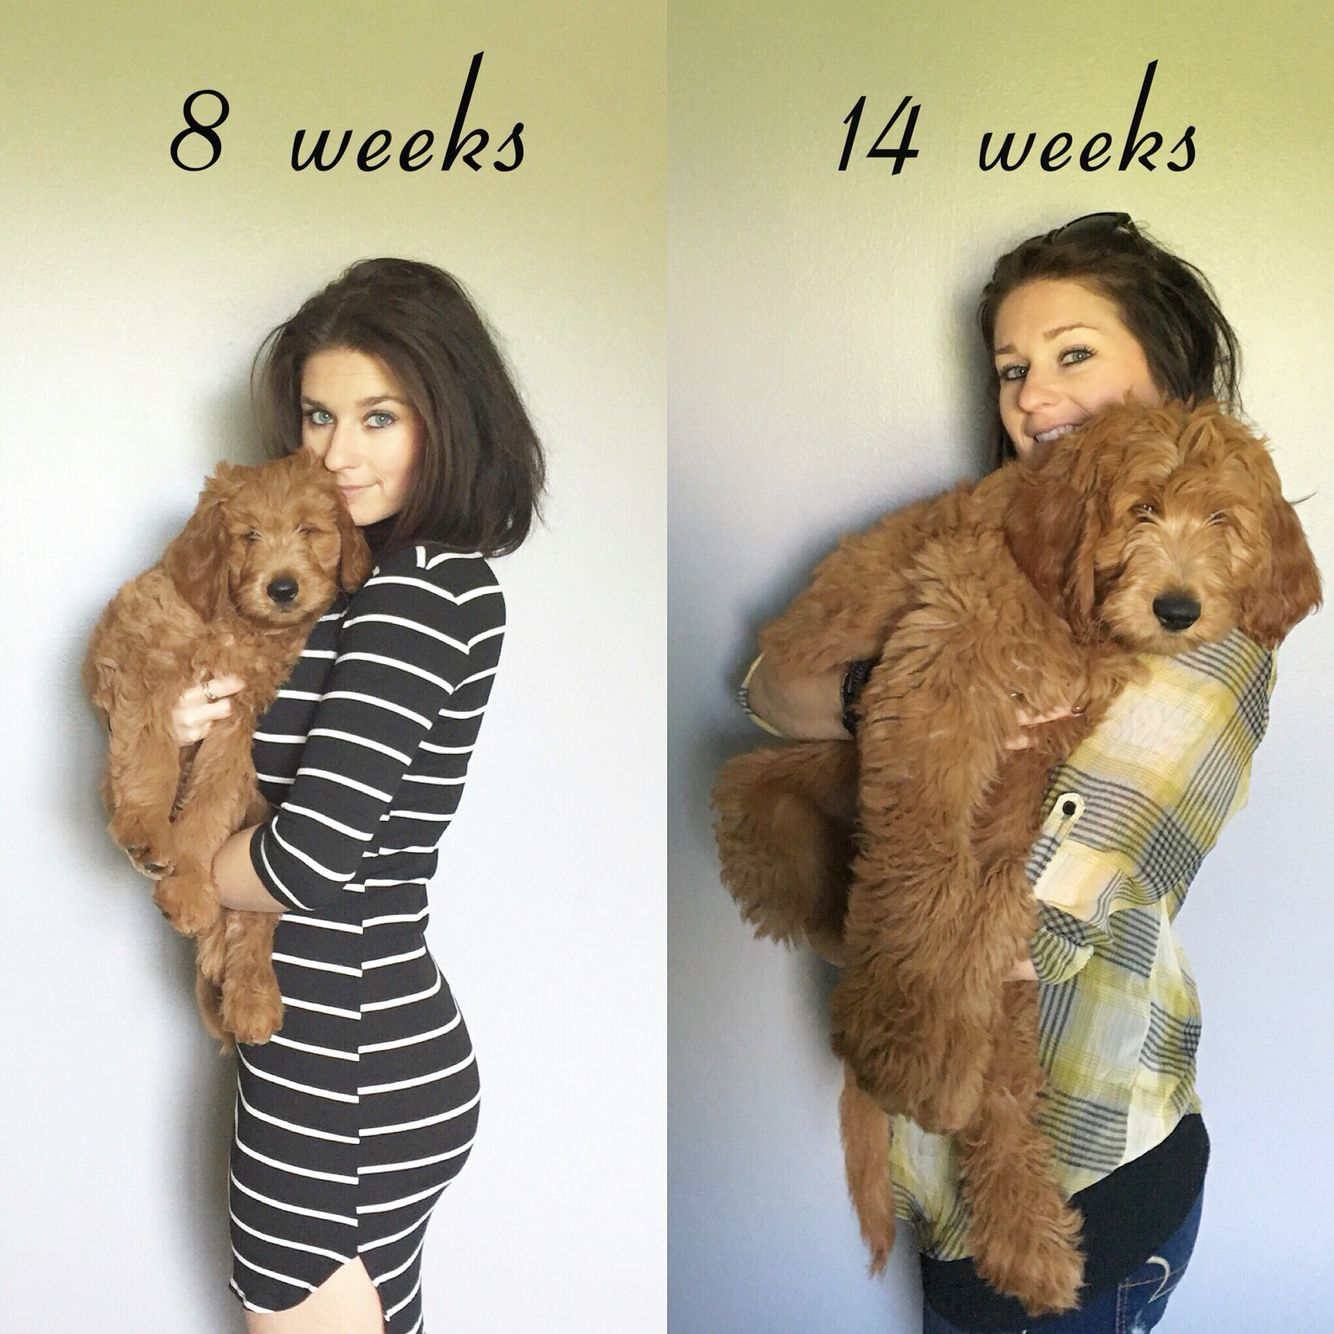 F1 Goldendoodle pup difference from 8 to 14 weeks. This